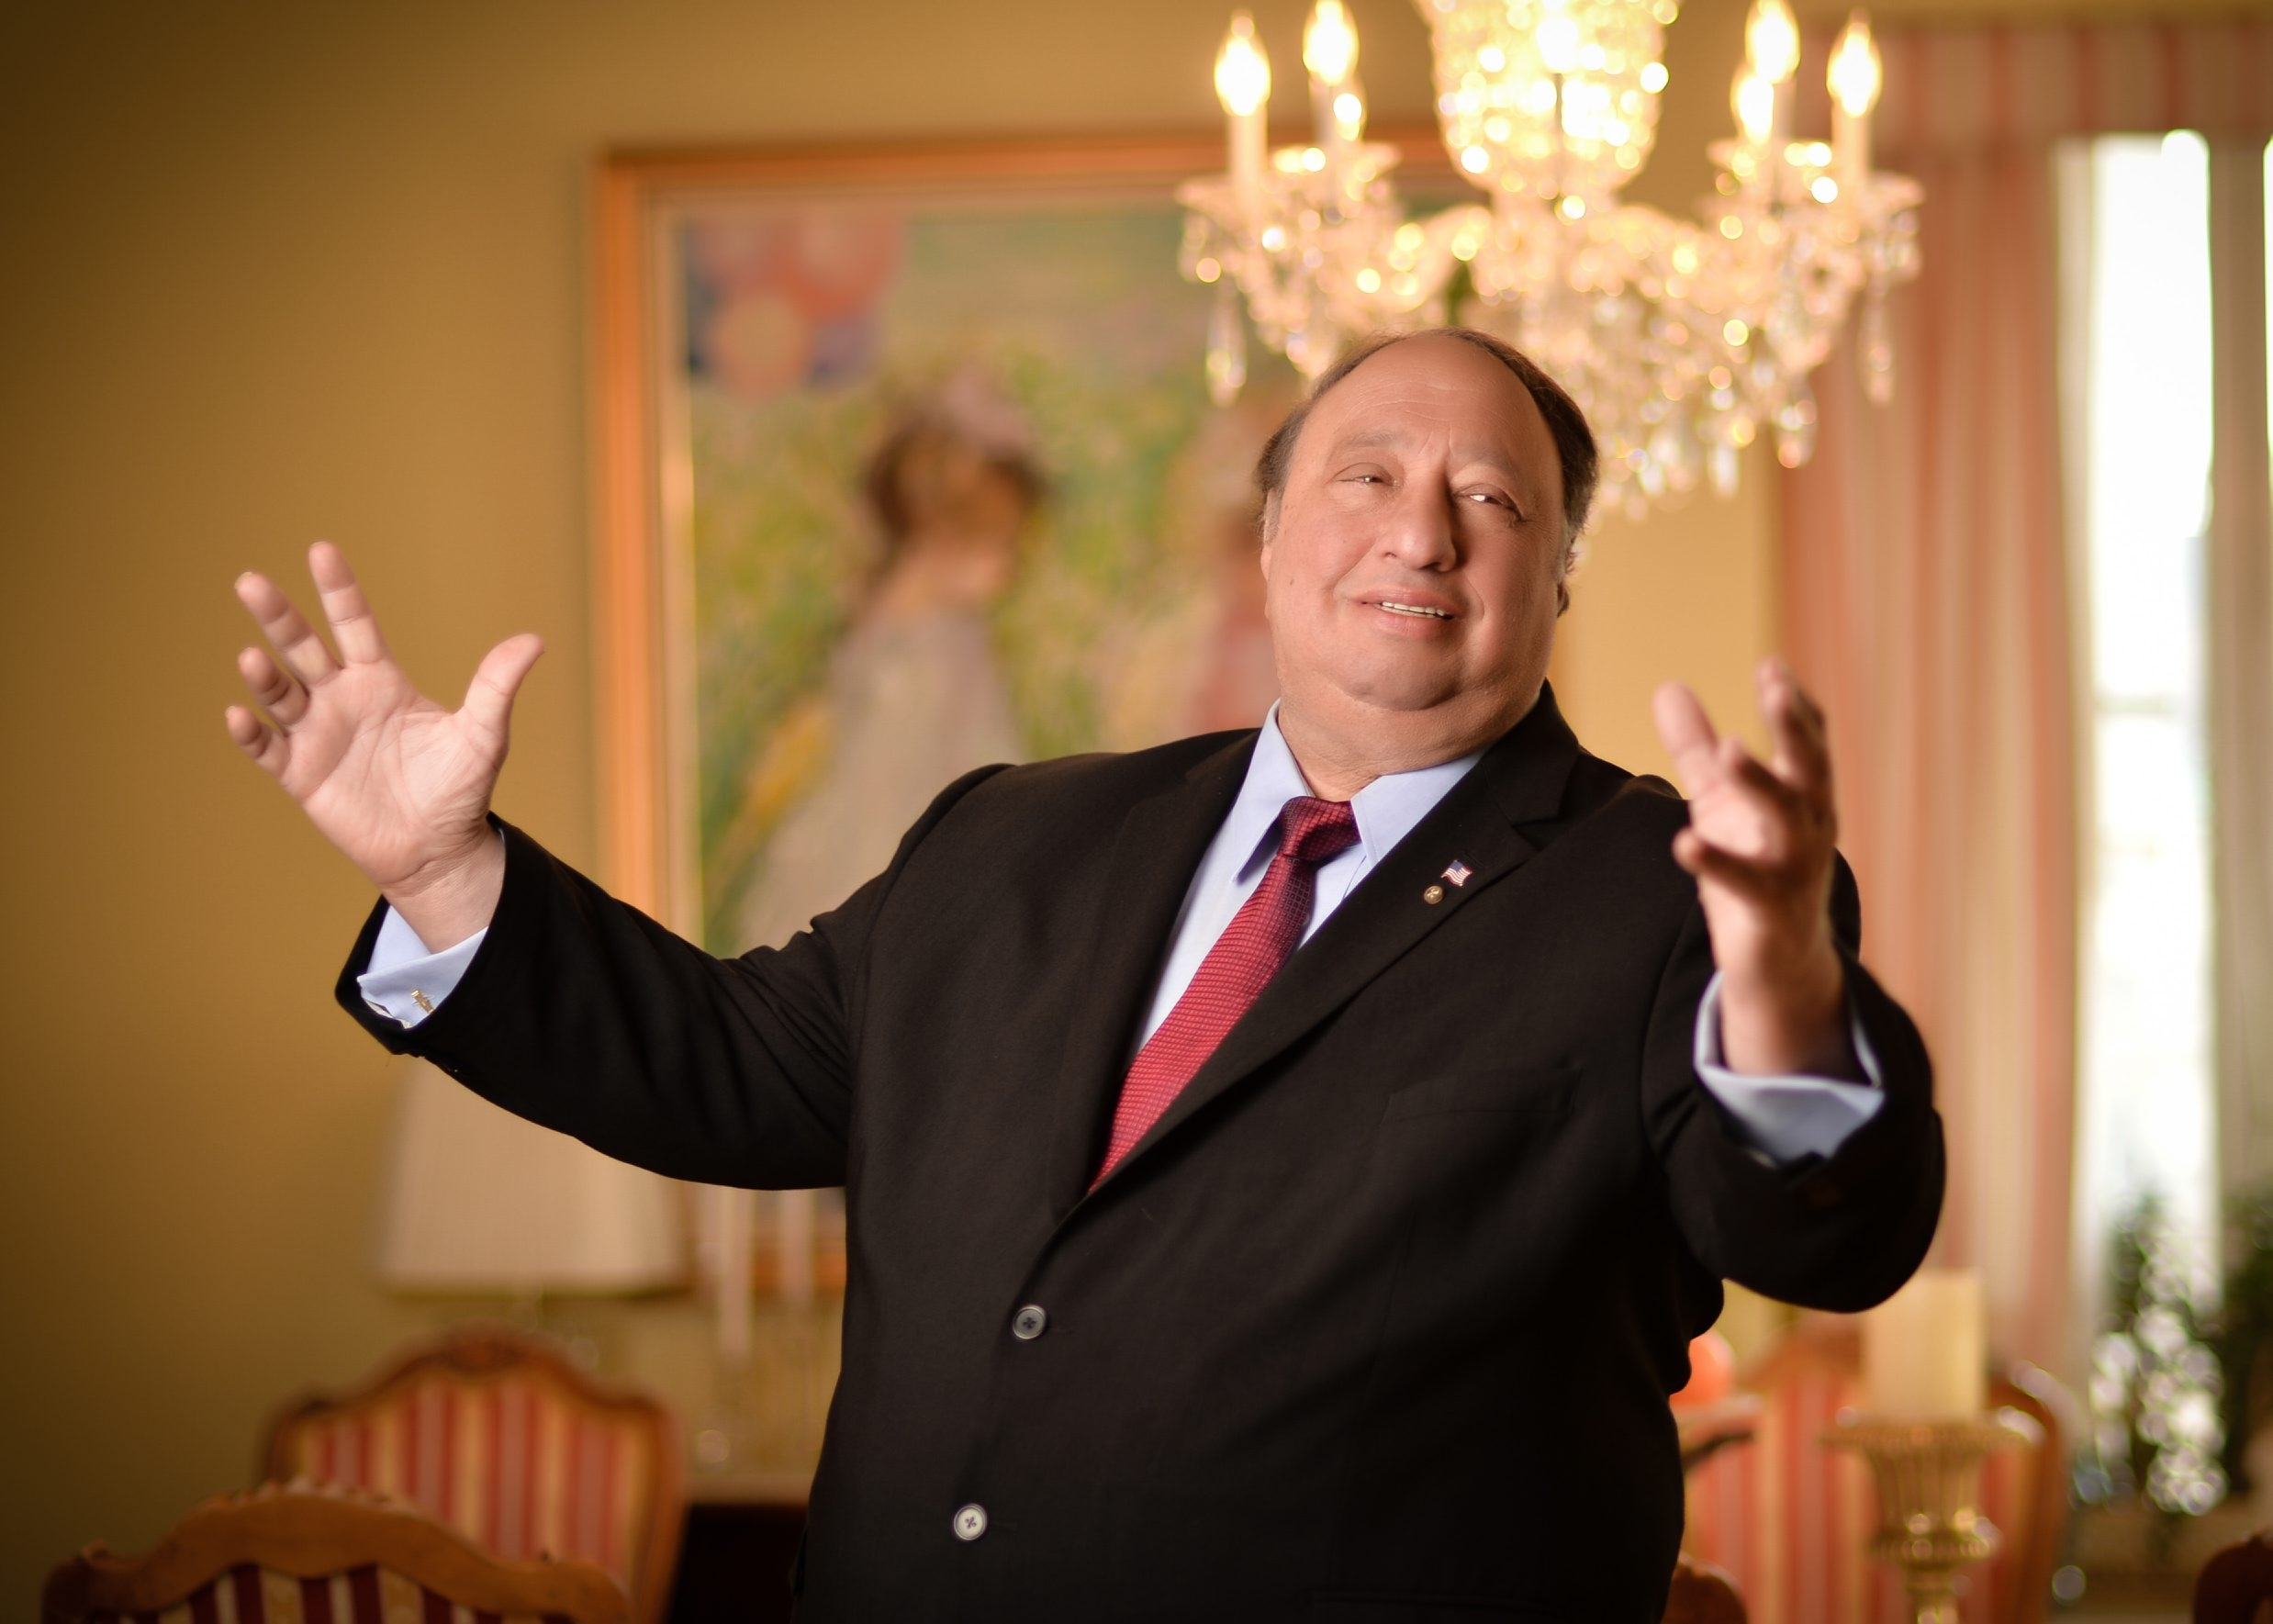 John Catsimatidis, a self-made billionaire who will be speaking at Daemen College on Monday, poses at his home in New York City.